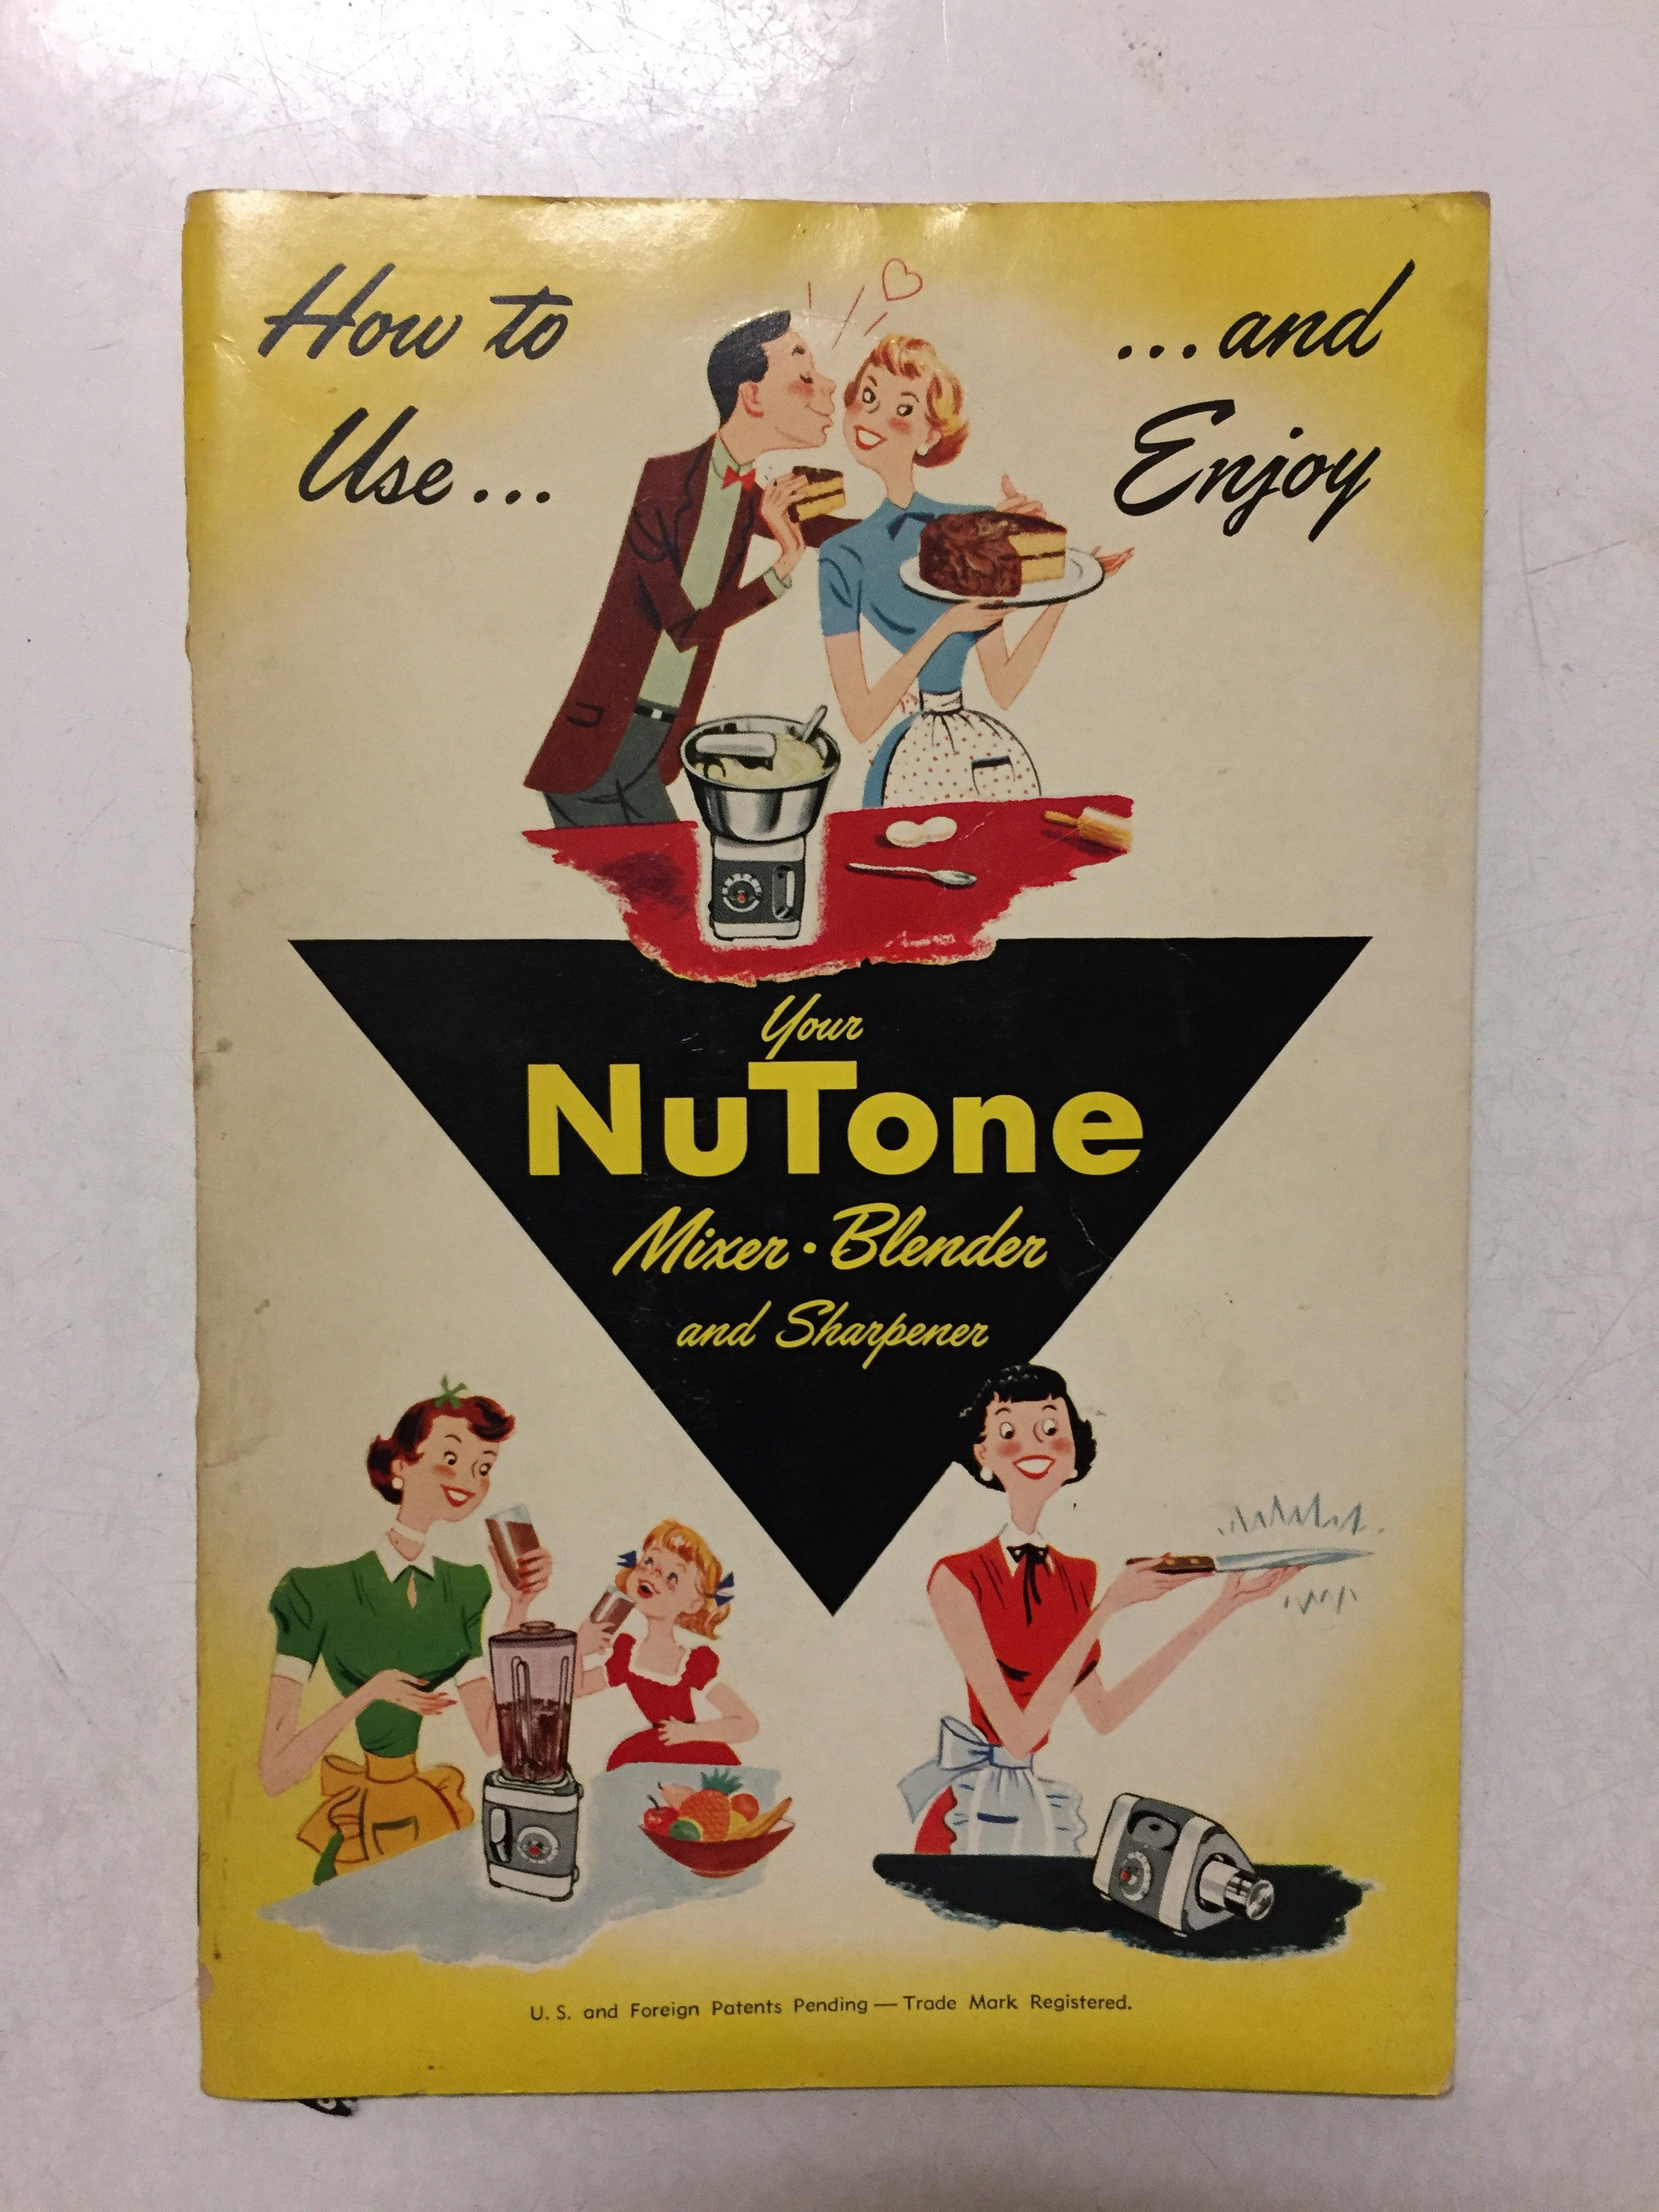 How to Use and Enjoy Your Nutone Mixer Blender and Sharpener - Slickcatbooks